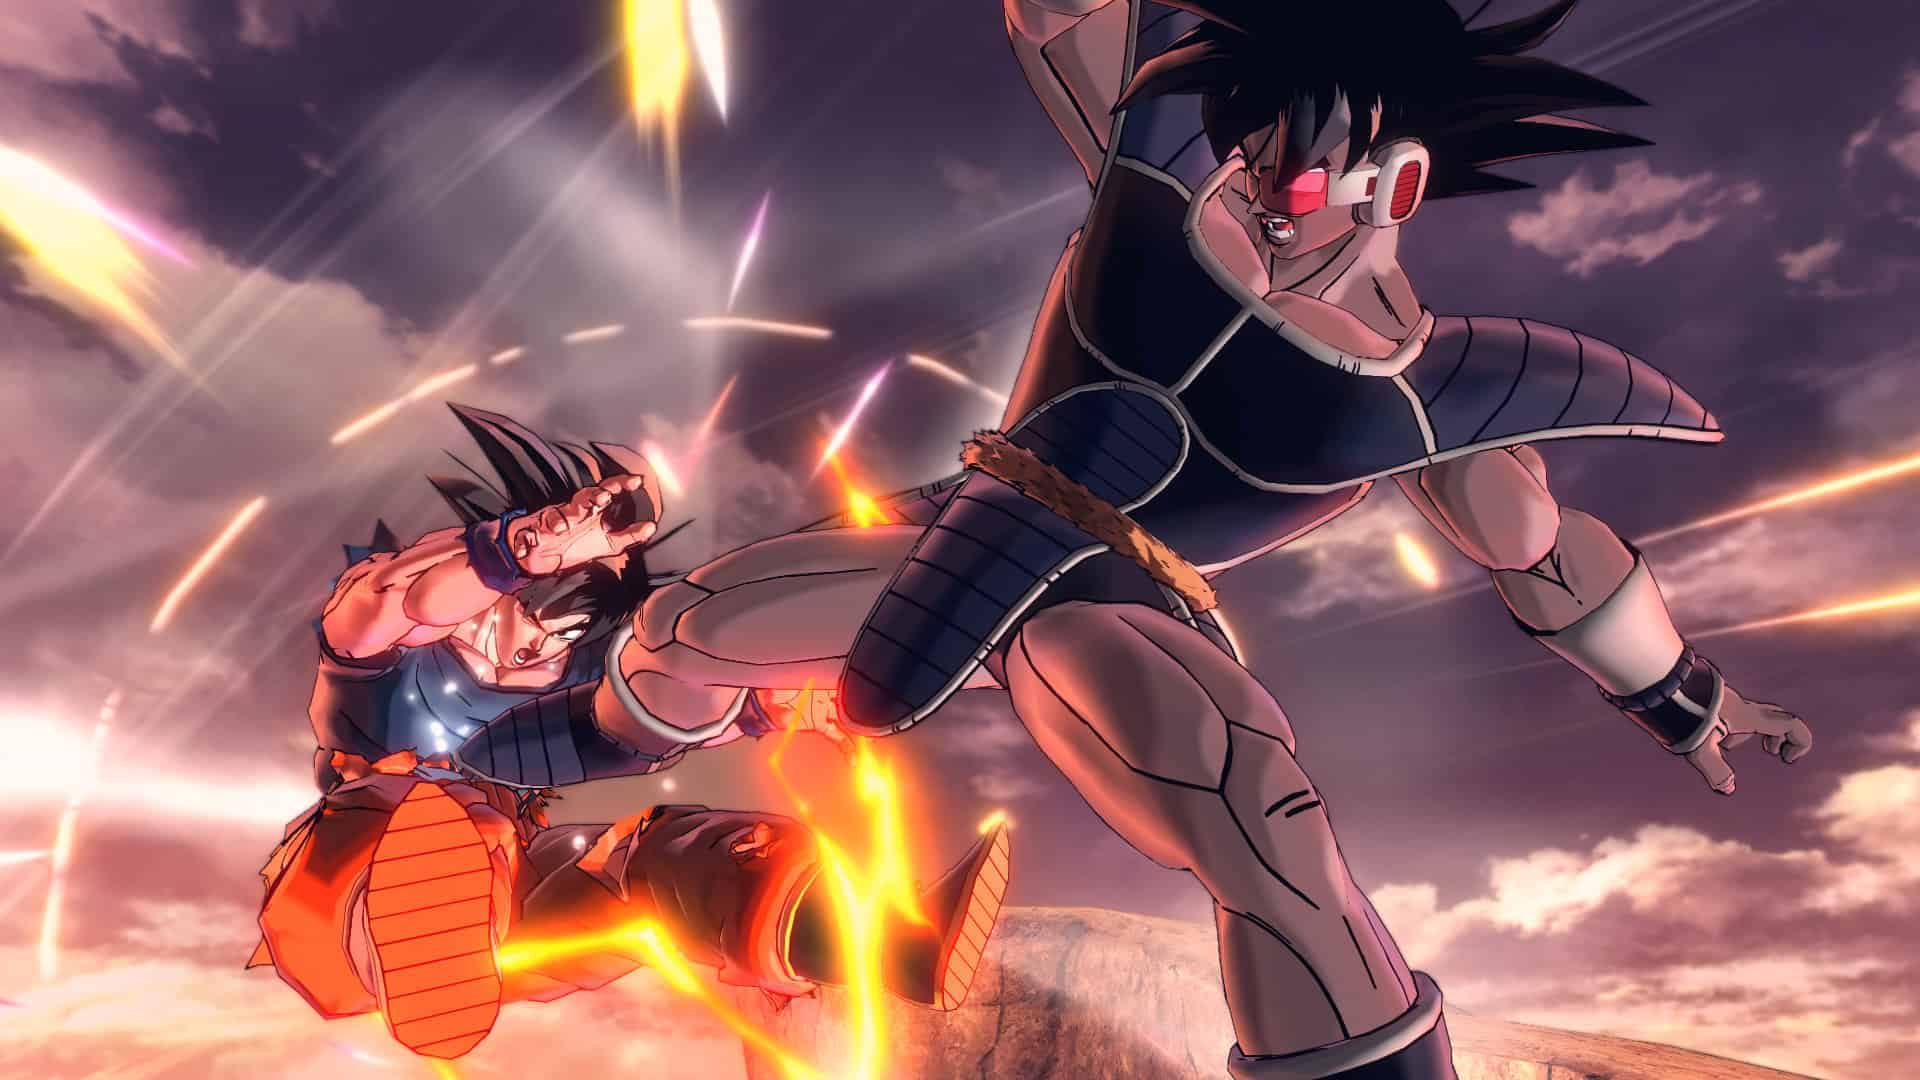 dragon ball xenoverse apk download for android